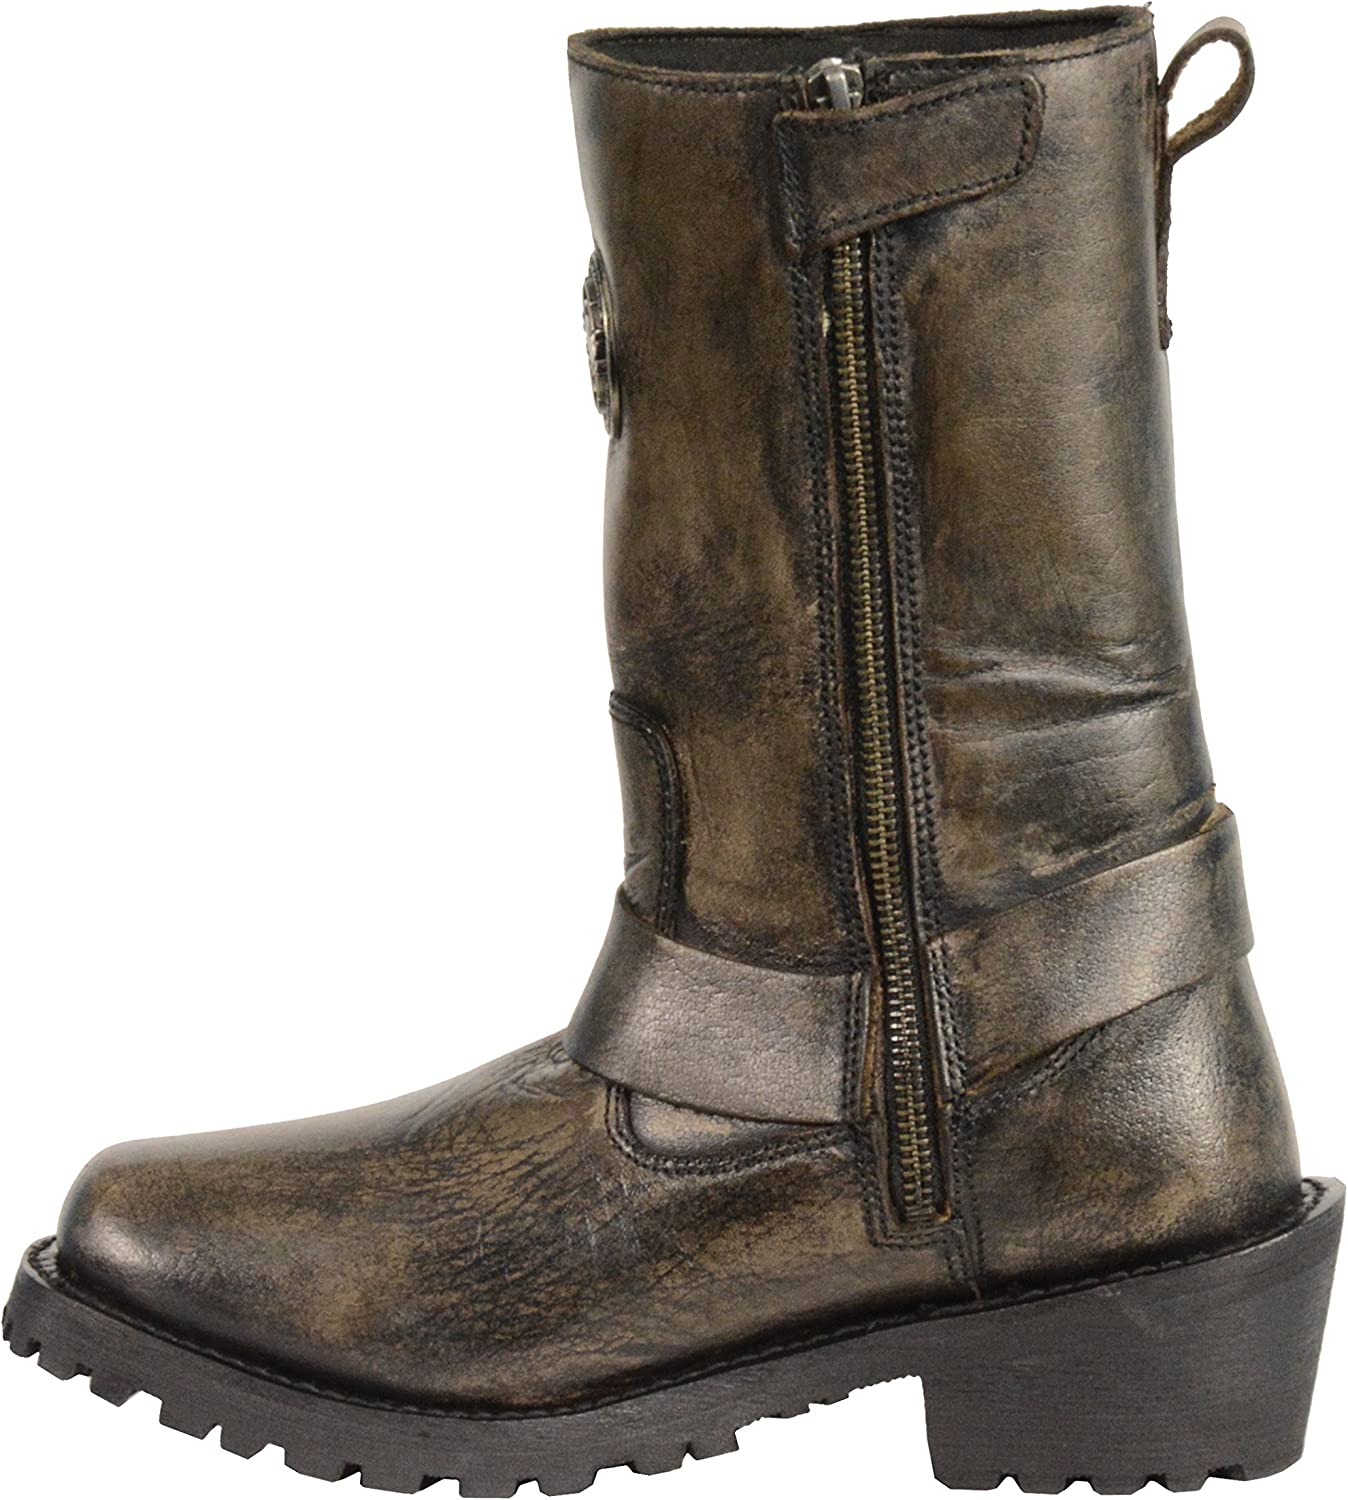 9 Milwaukee Leather MBL9362 Womens 11 Inch Distressed Grey Classic Harness Square Toe Leather Boots